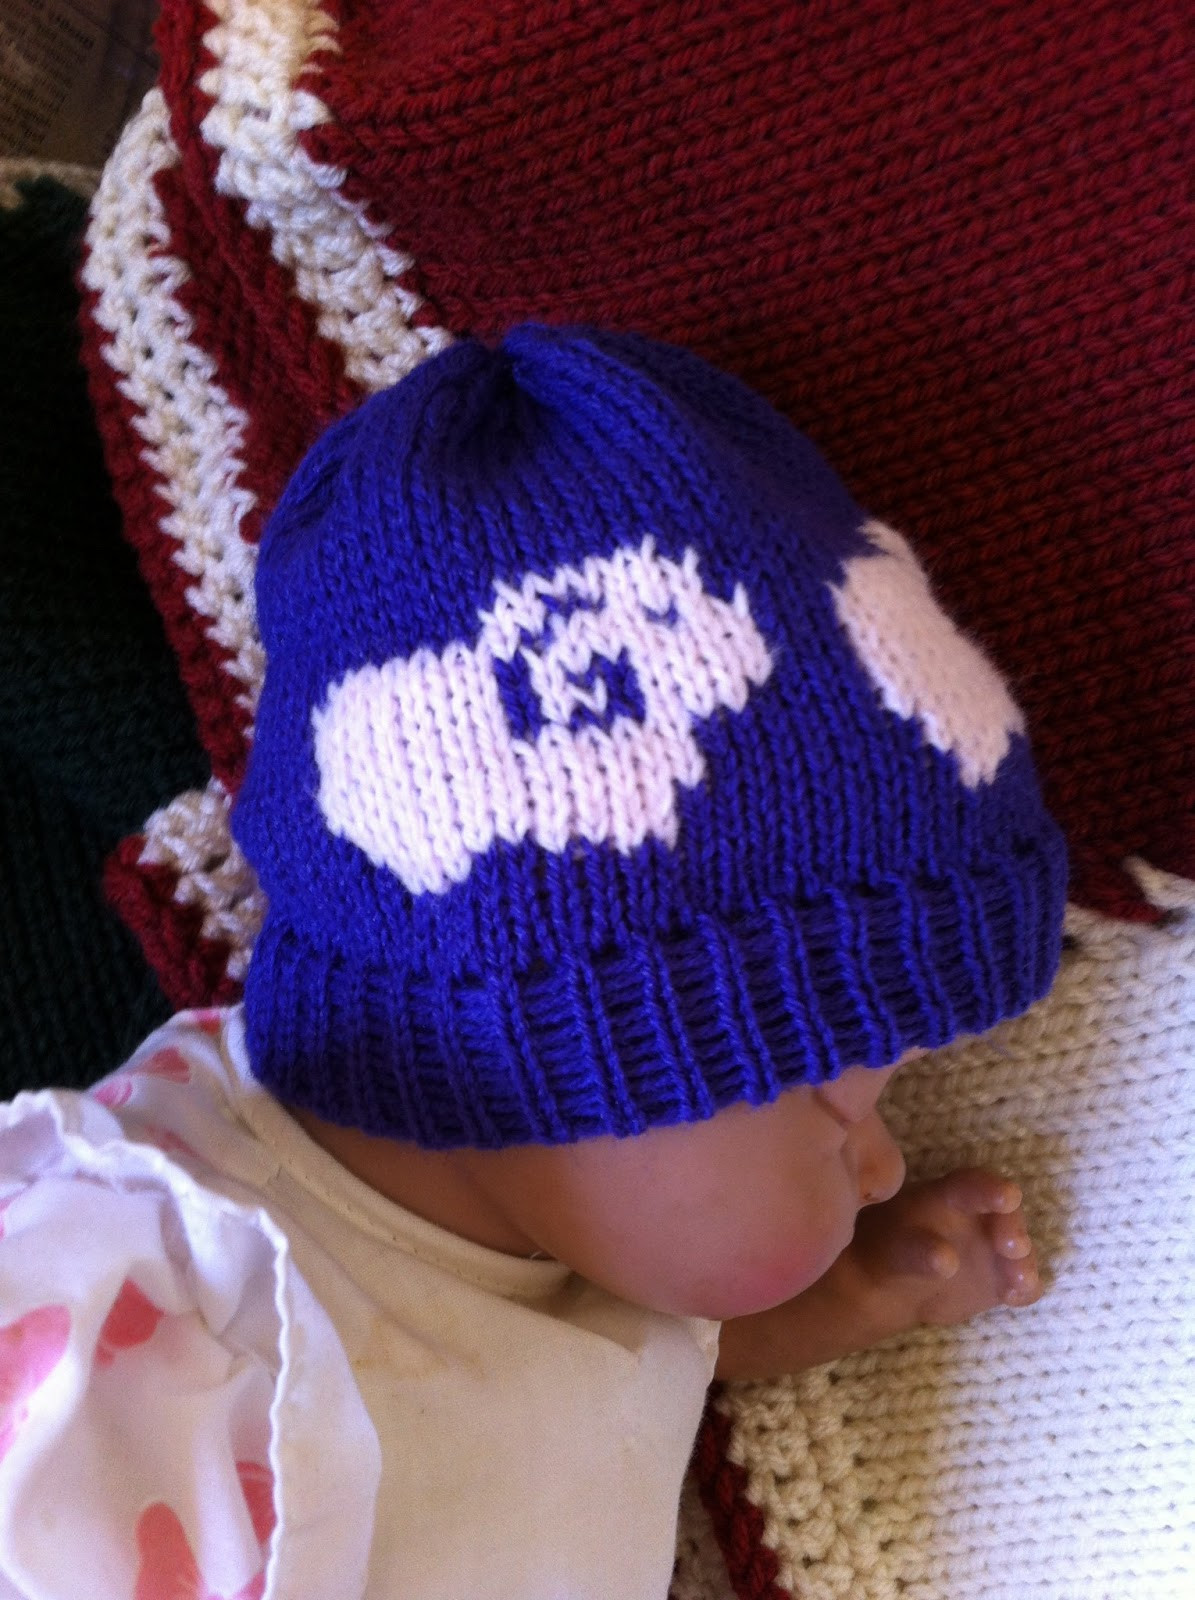 Best Of Machine Knitting Fun Preemie Hats On A Sunny Day Knitted Preemie Hats Of Contemporary 46 Images Knitted Preemie Hats